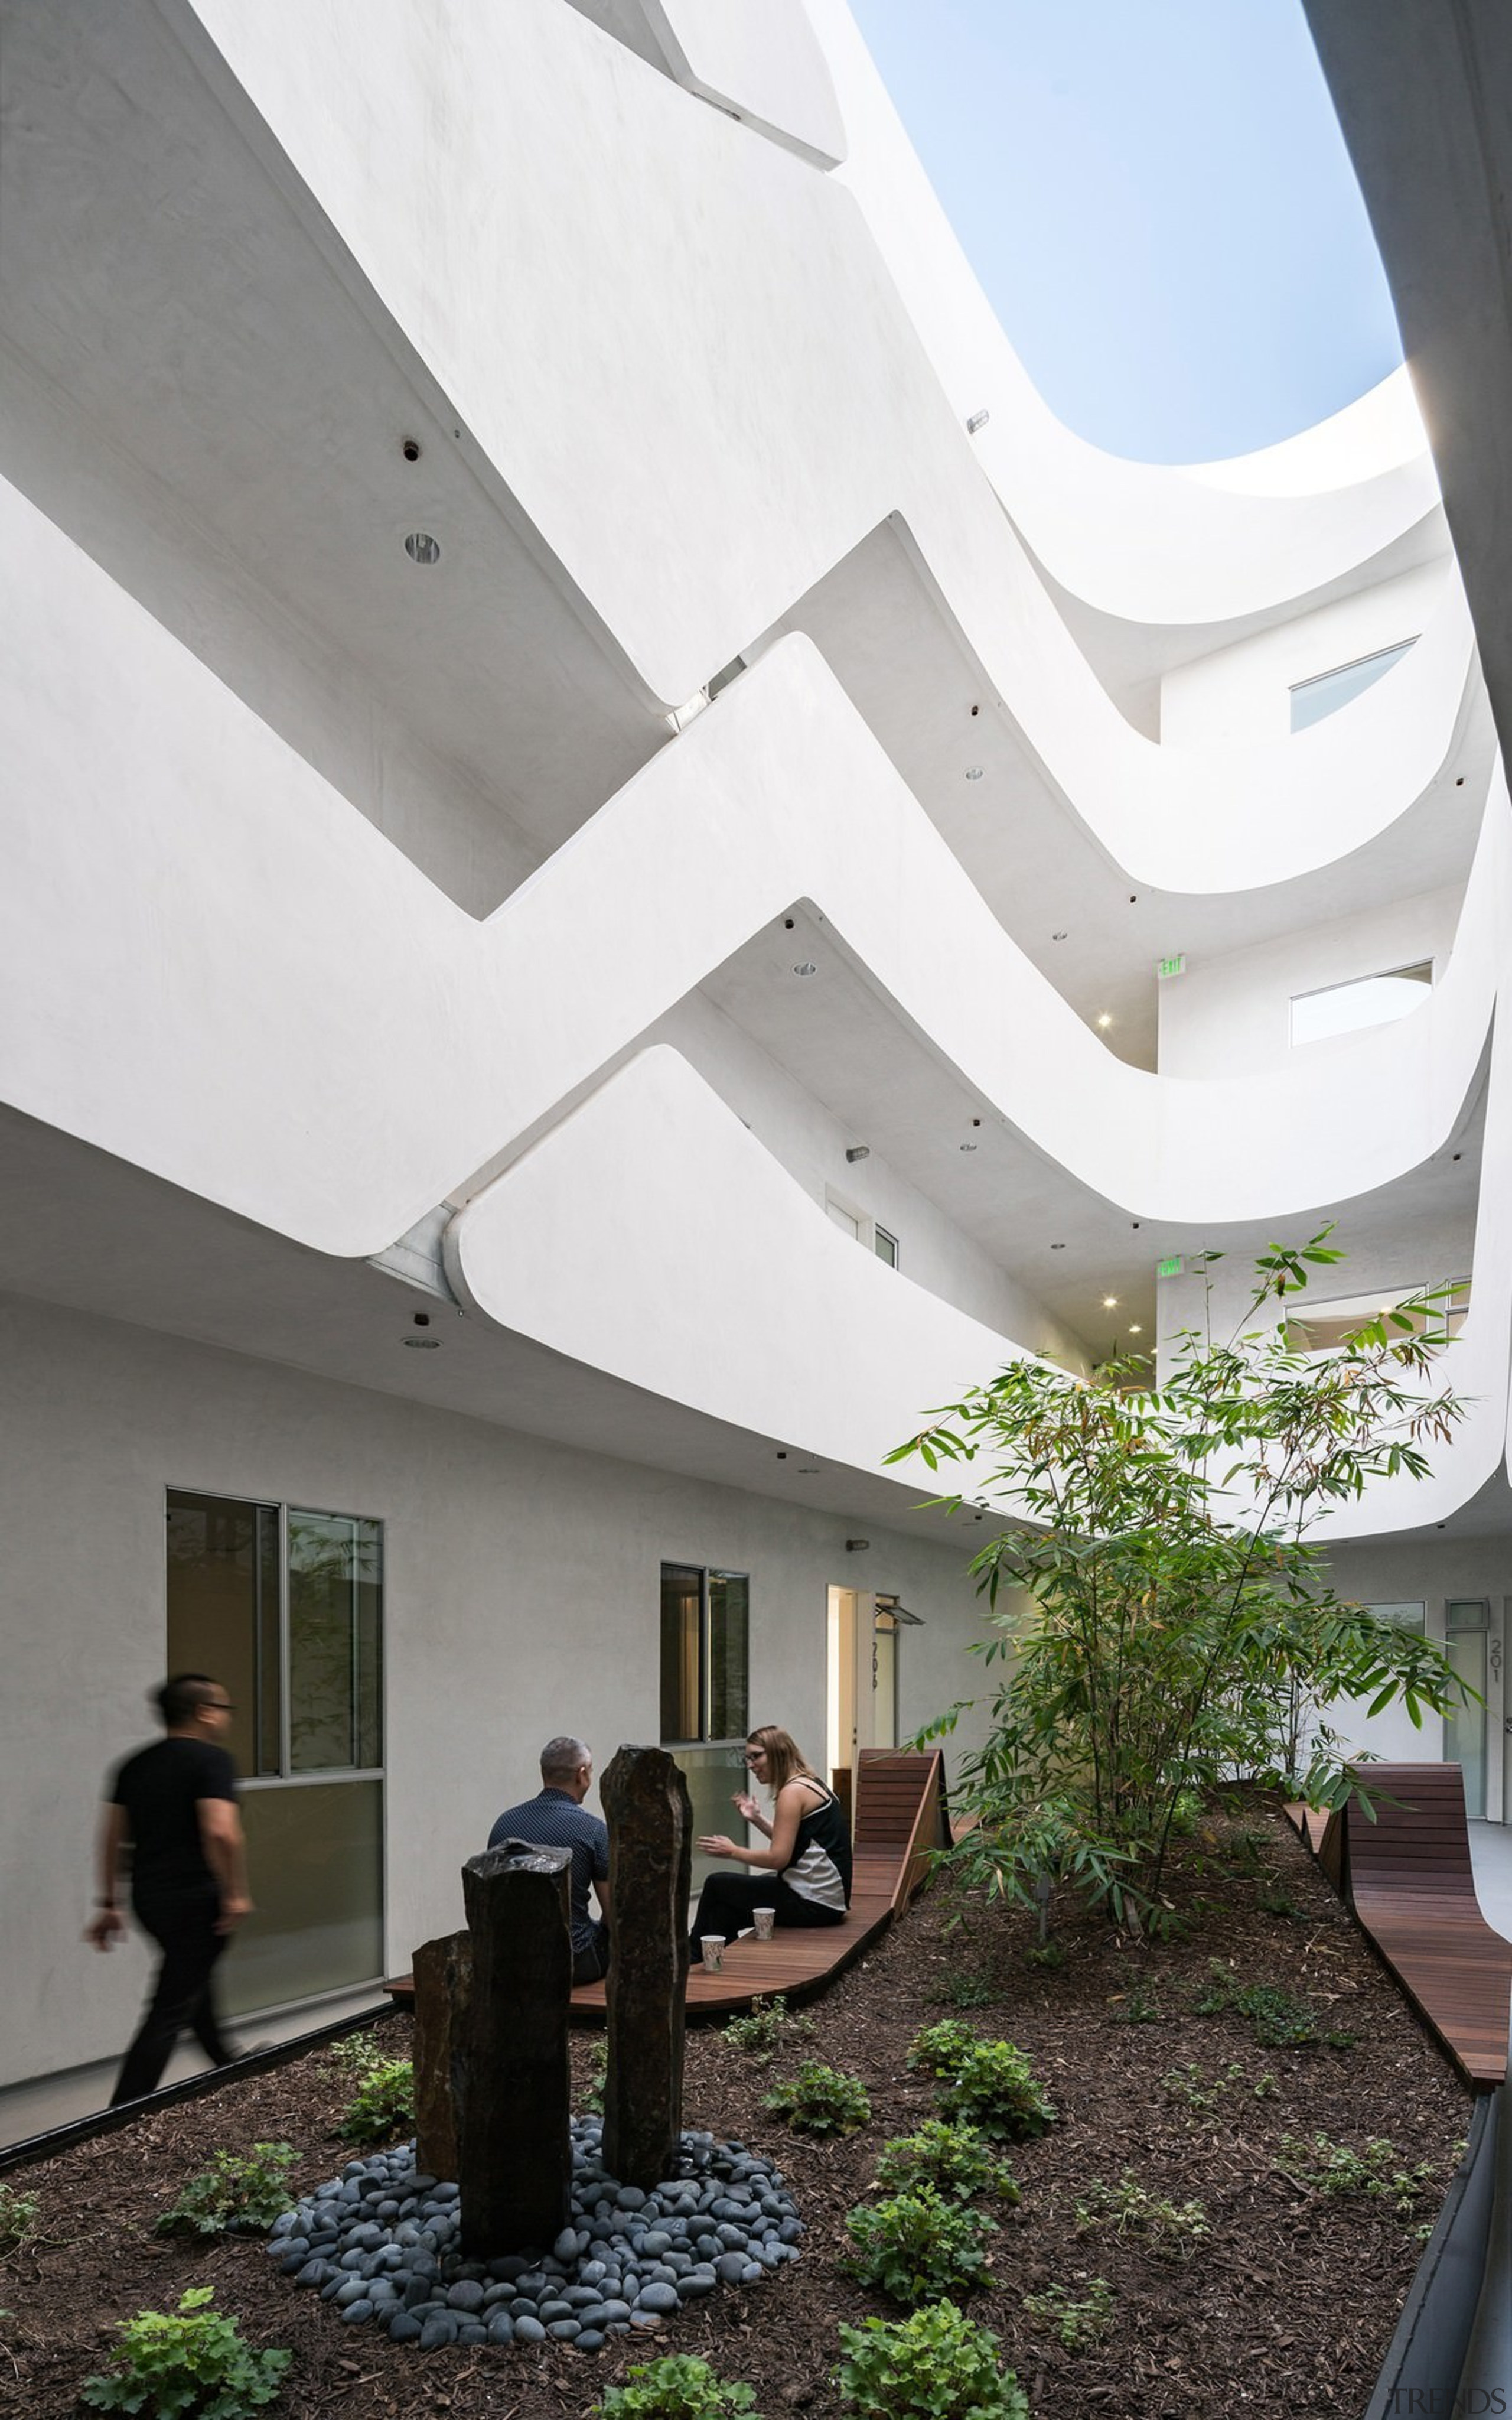 The garden on the ground floor - The architecture, ceiling, daylighting, house, interior design, white, gray